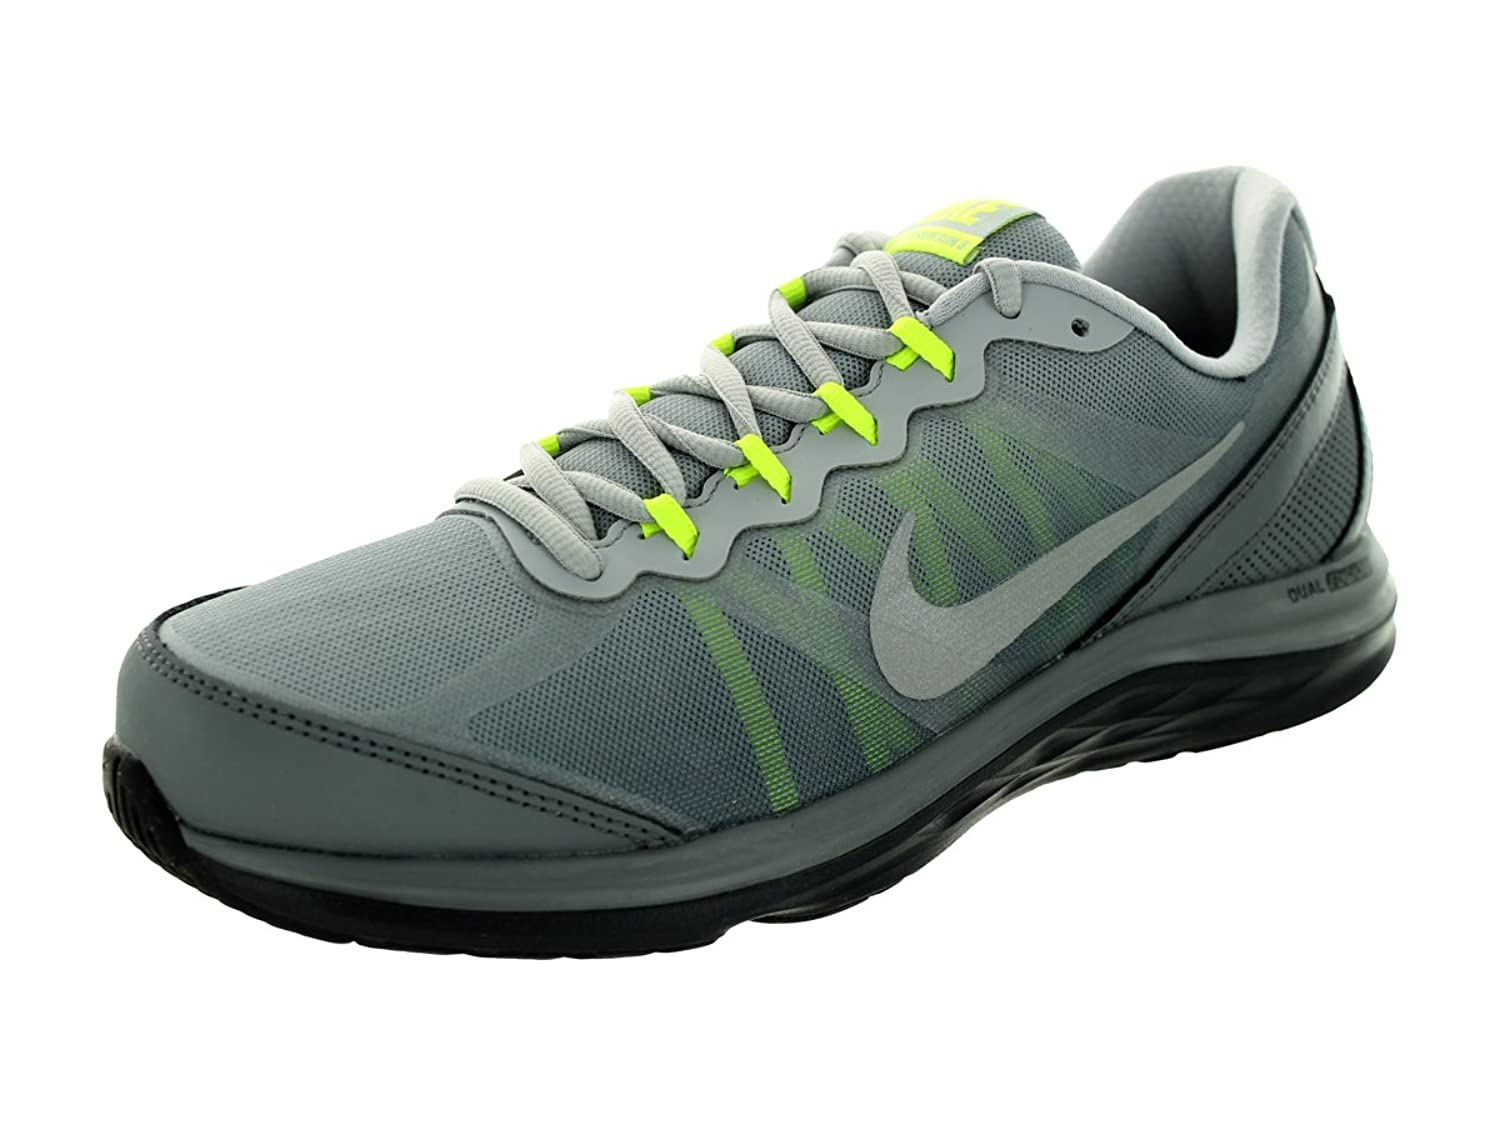 Images for Nike Men's Dual Fusion Run 3 Premium Anthrct/Rflct Slvr/Wlf  Gry/Cl Running Shoe 11 Men US